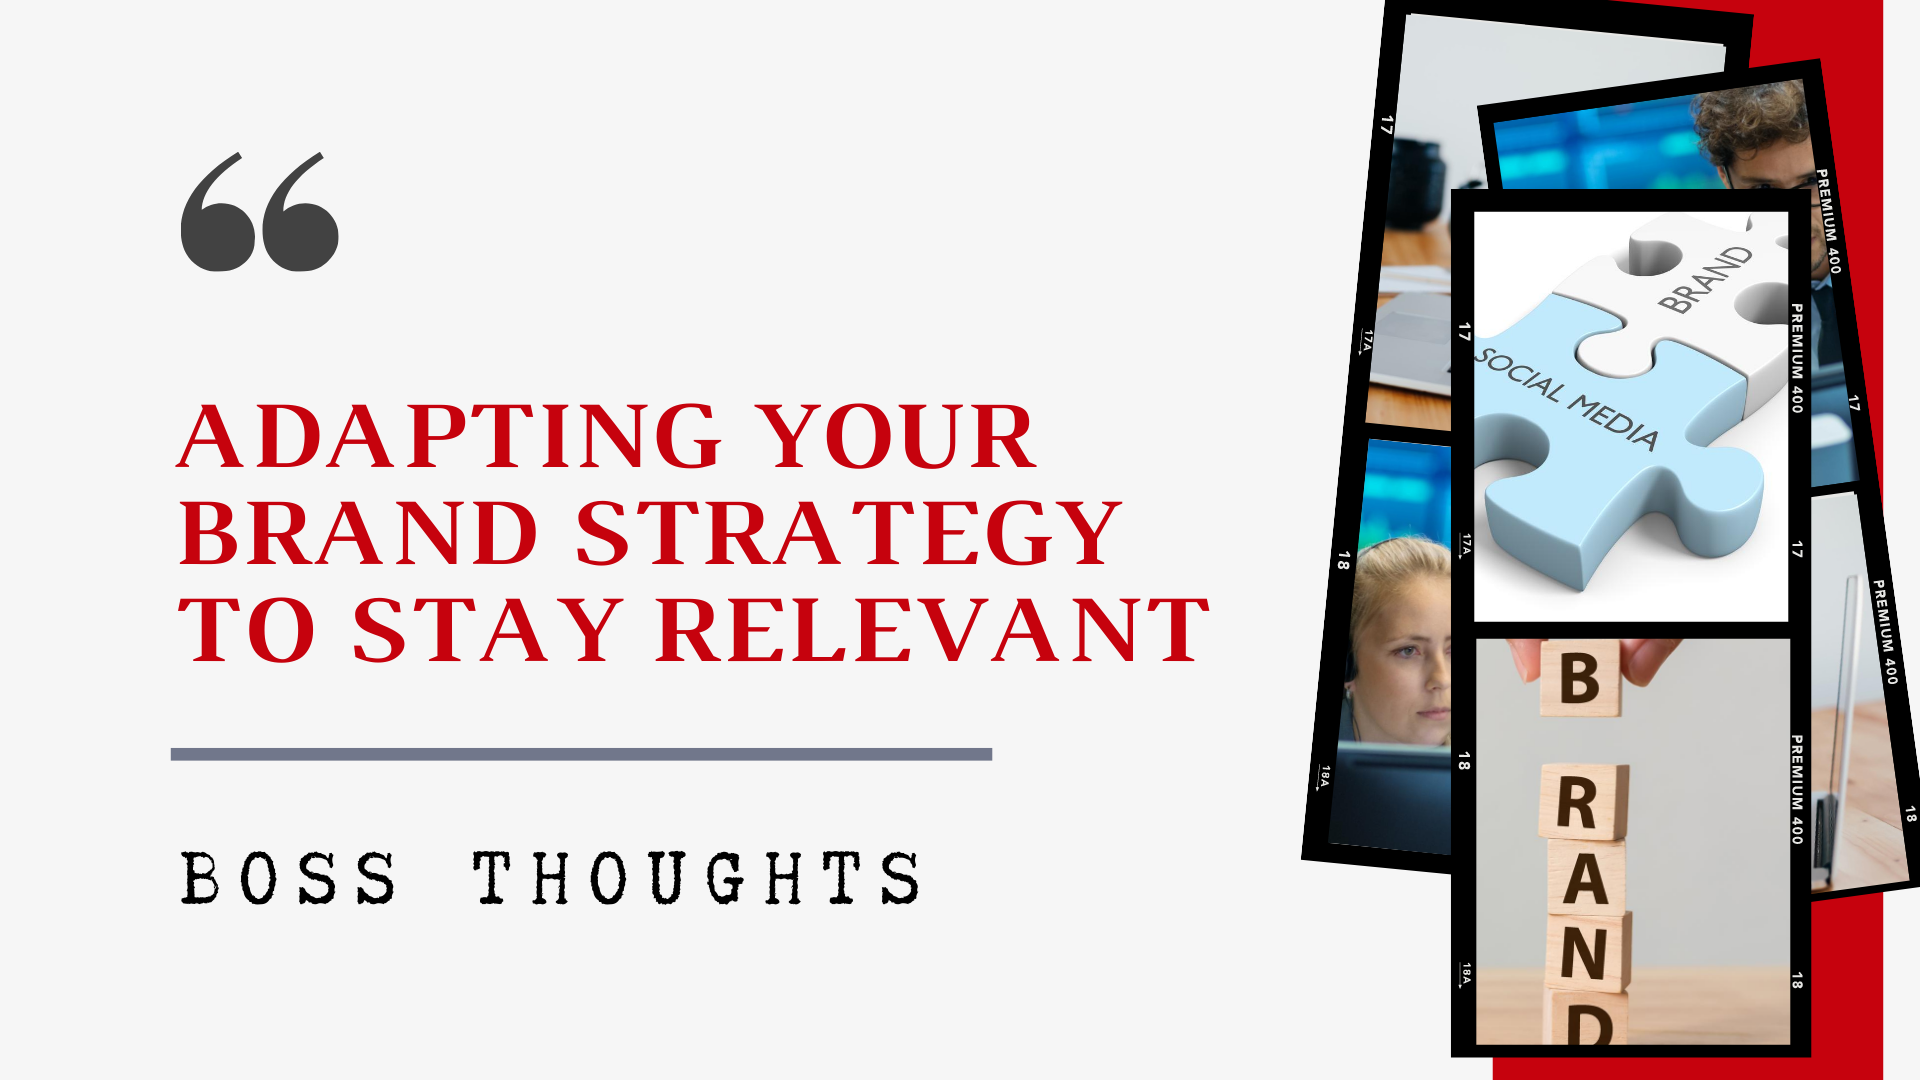 Adapting Your Brand Strategy to Stay Relevant